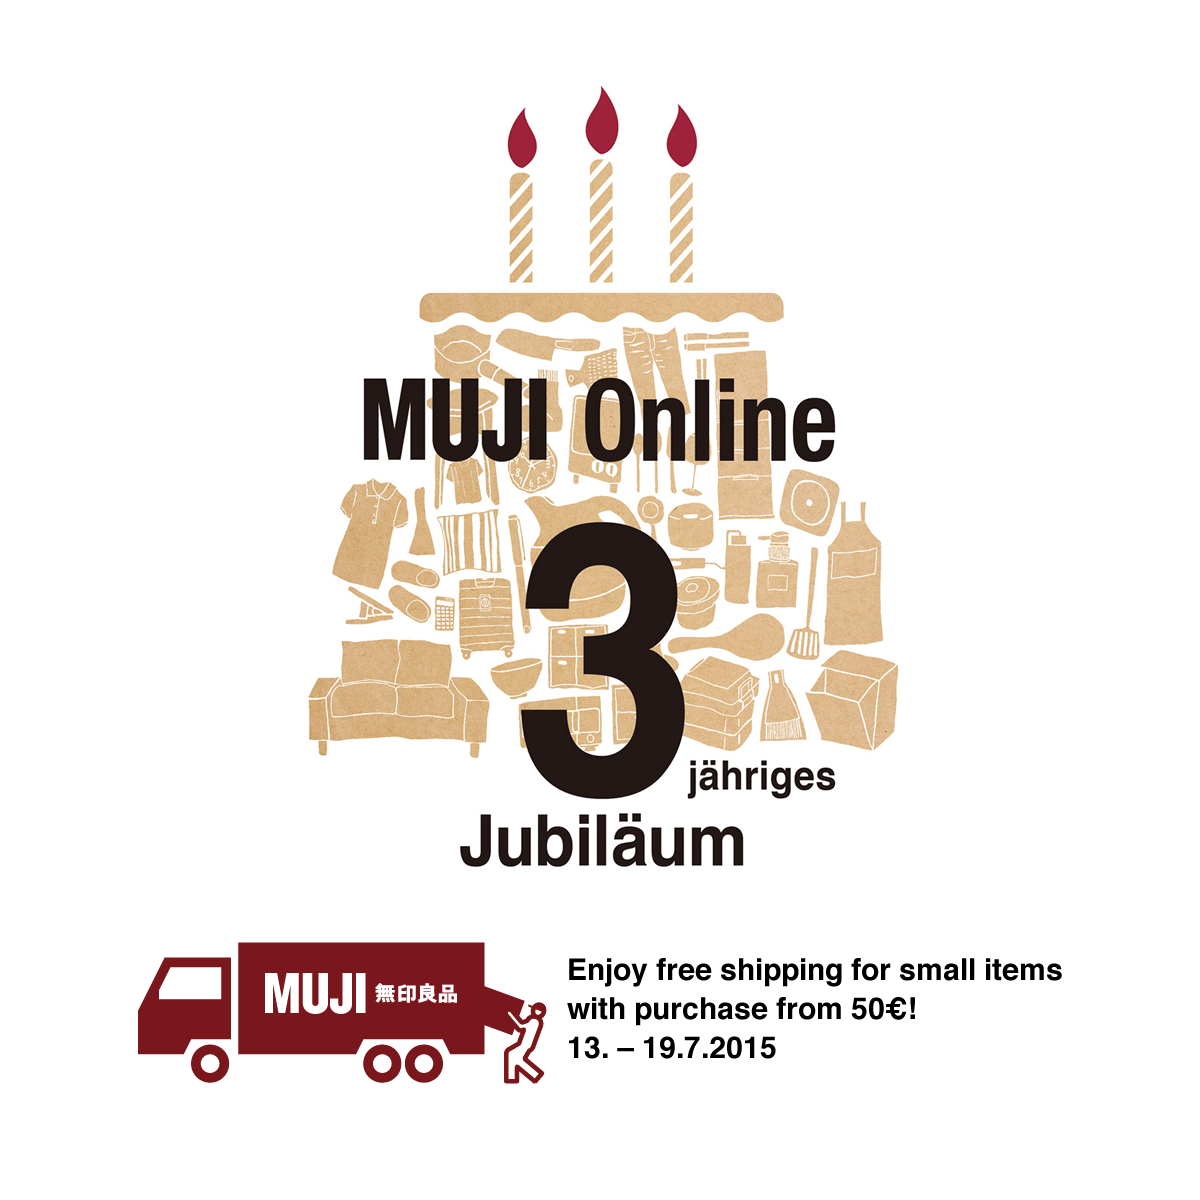 Enjoy free shipping for small items with purchase from 50€!